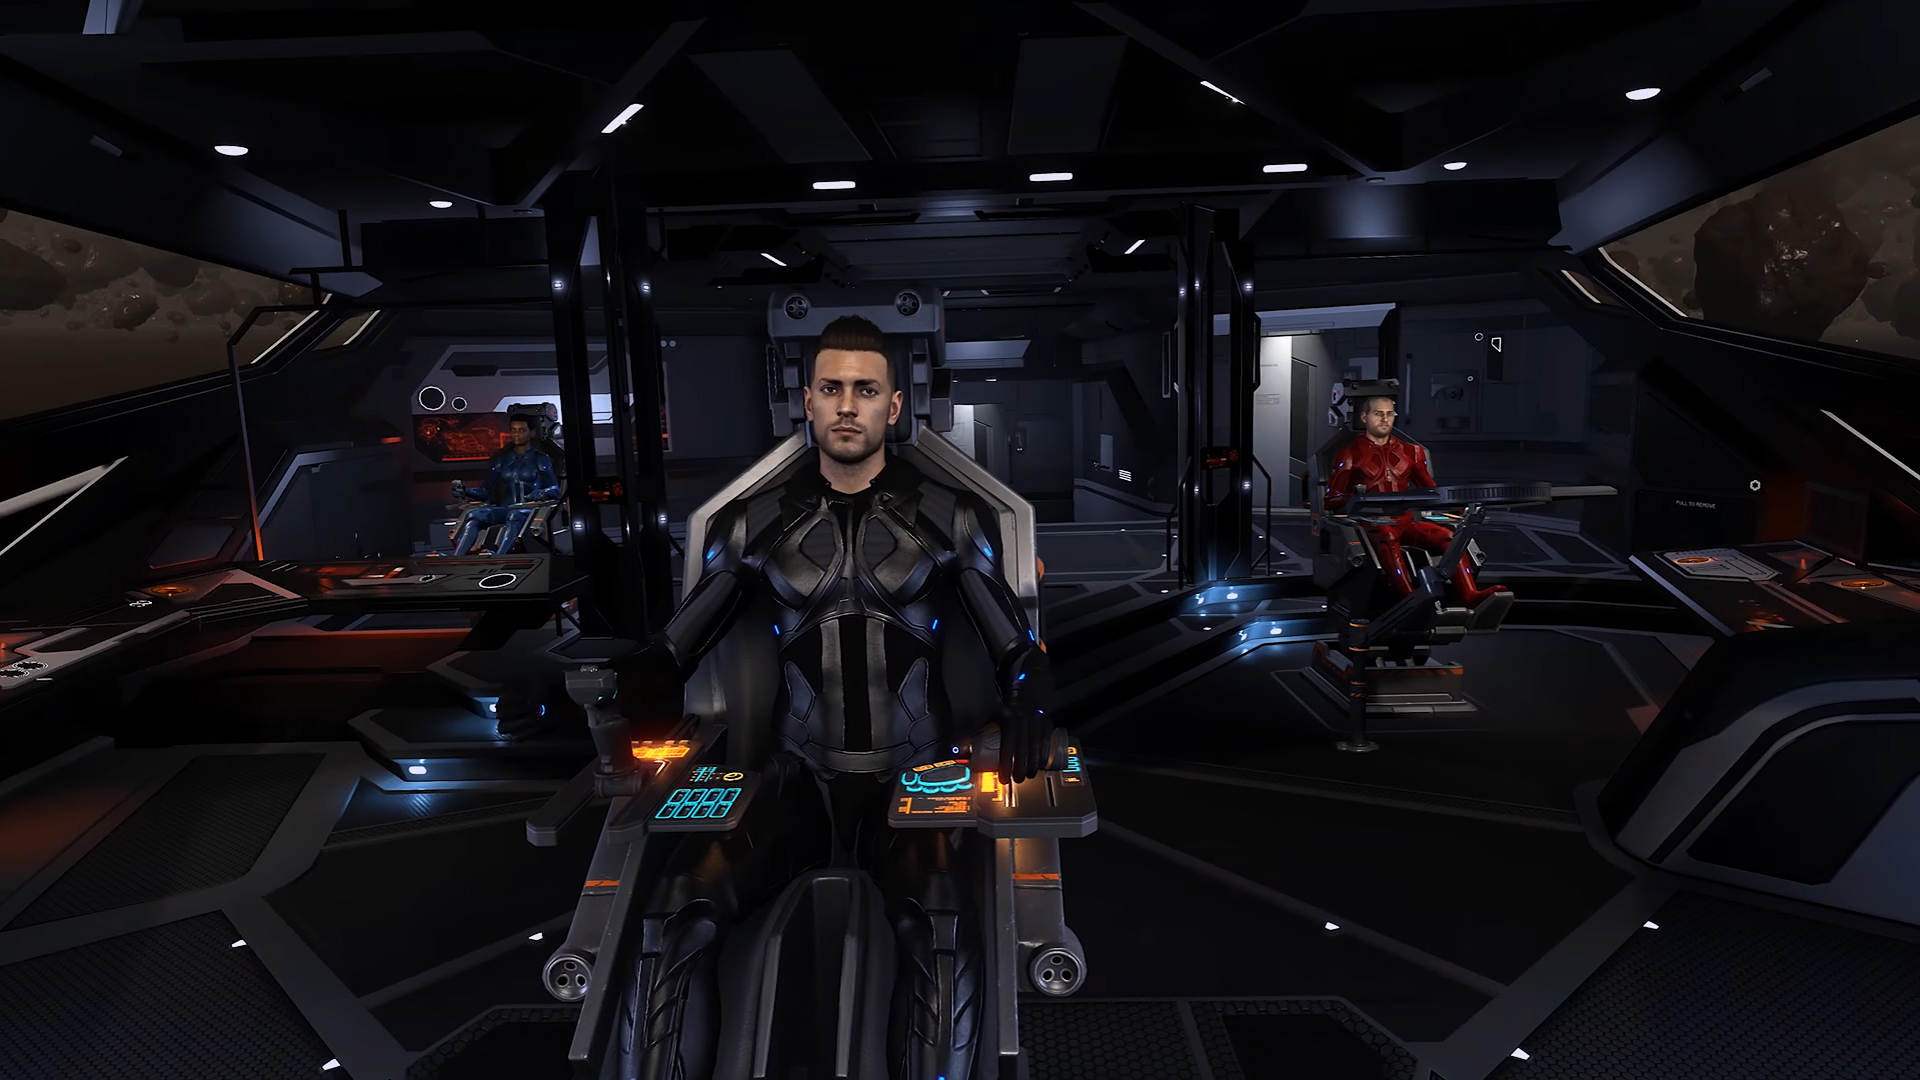 Elite dangerous 2.3 flight assist off and on controls guide